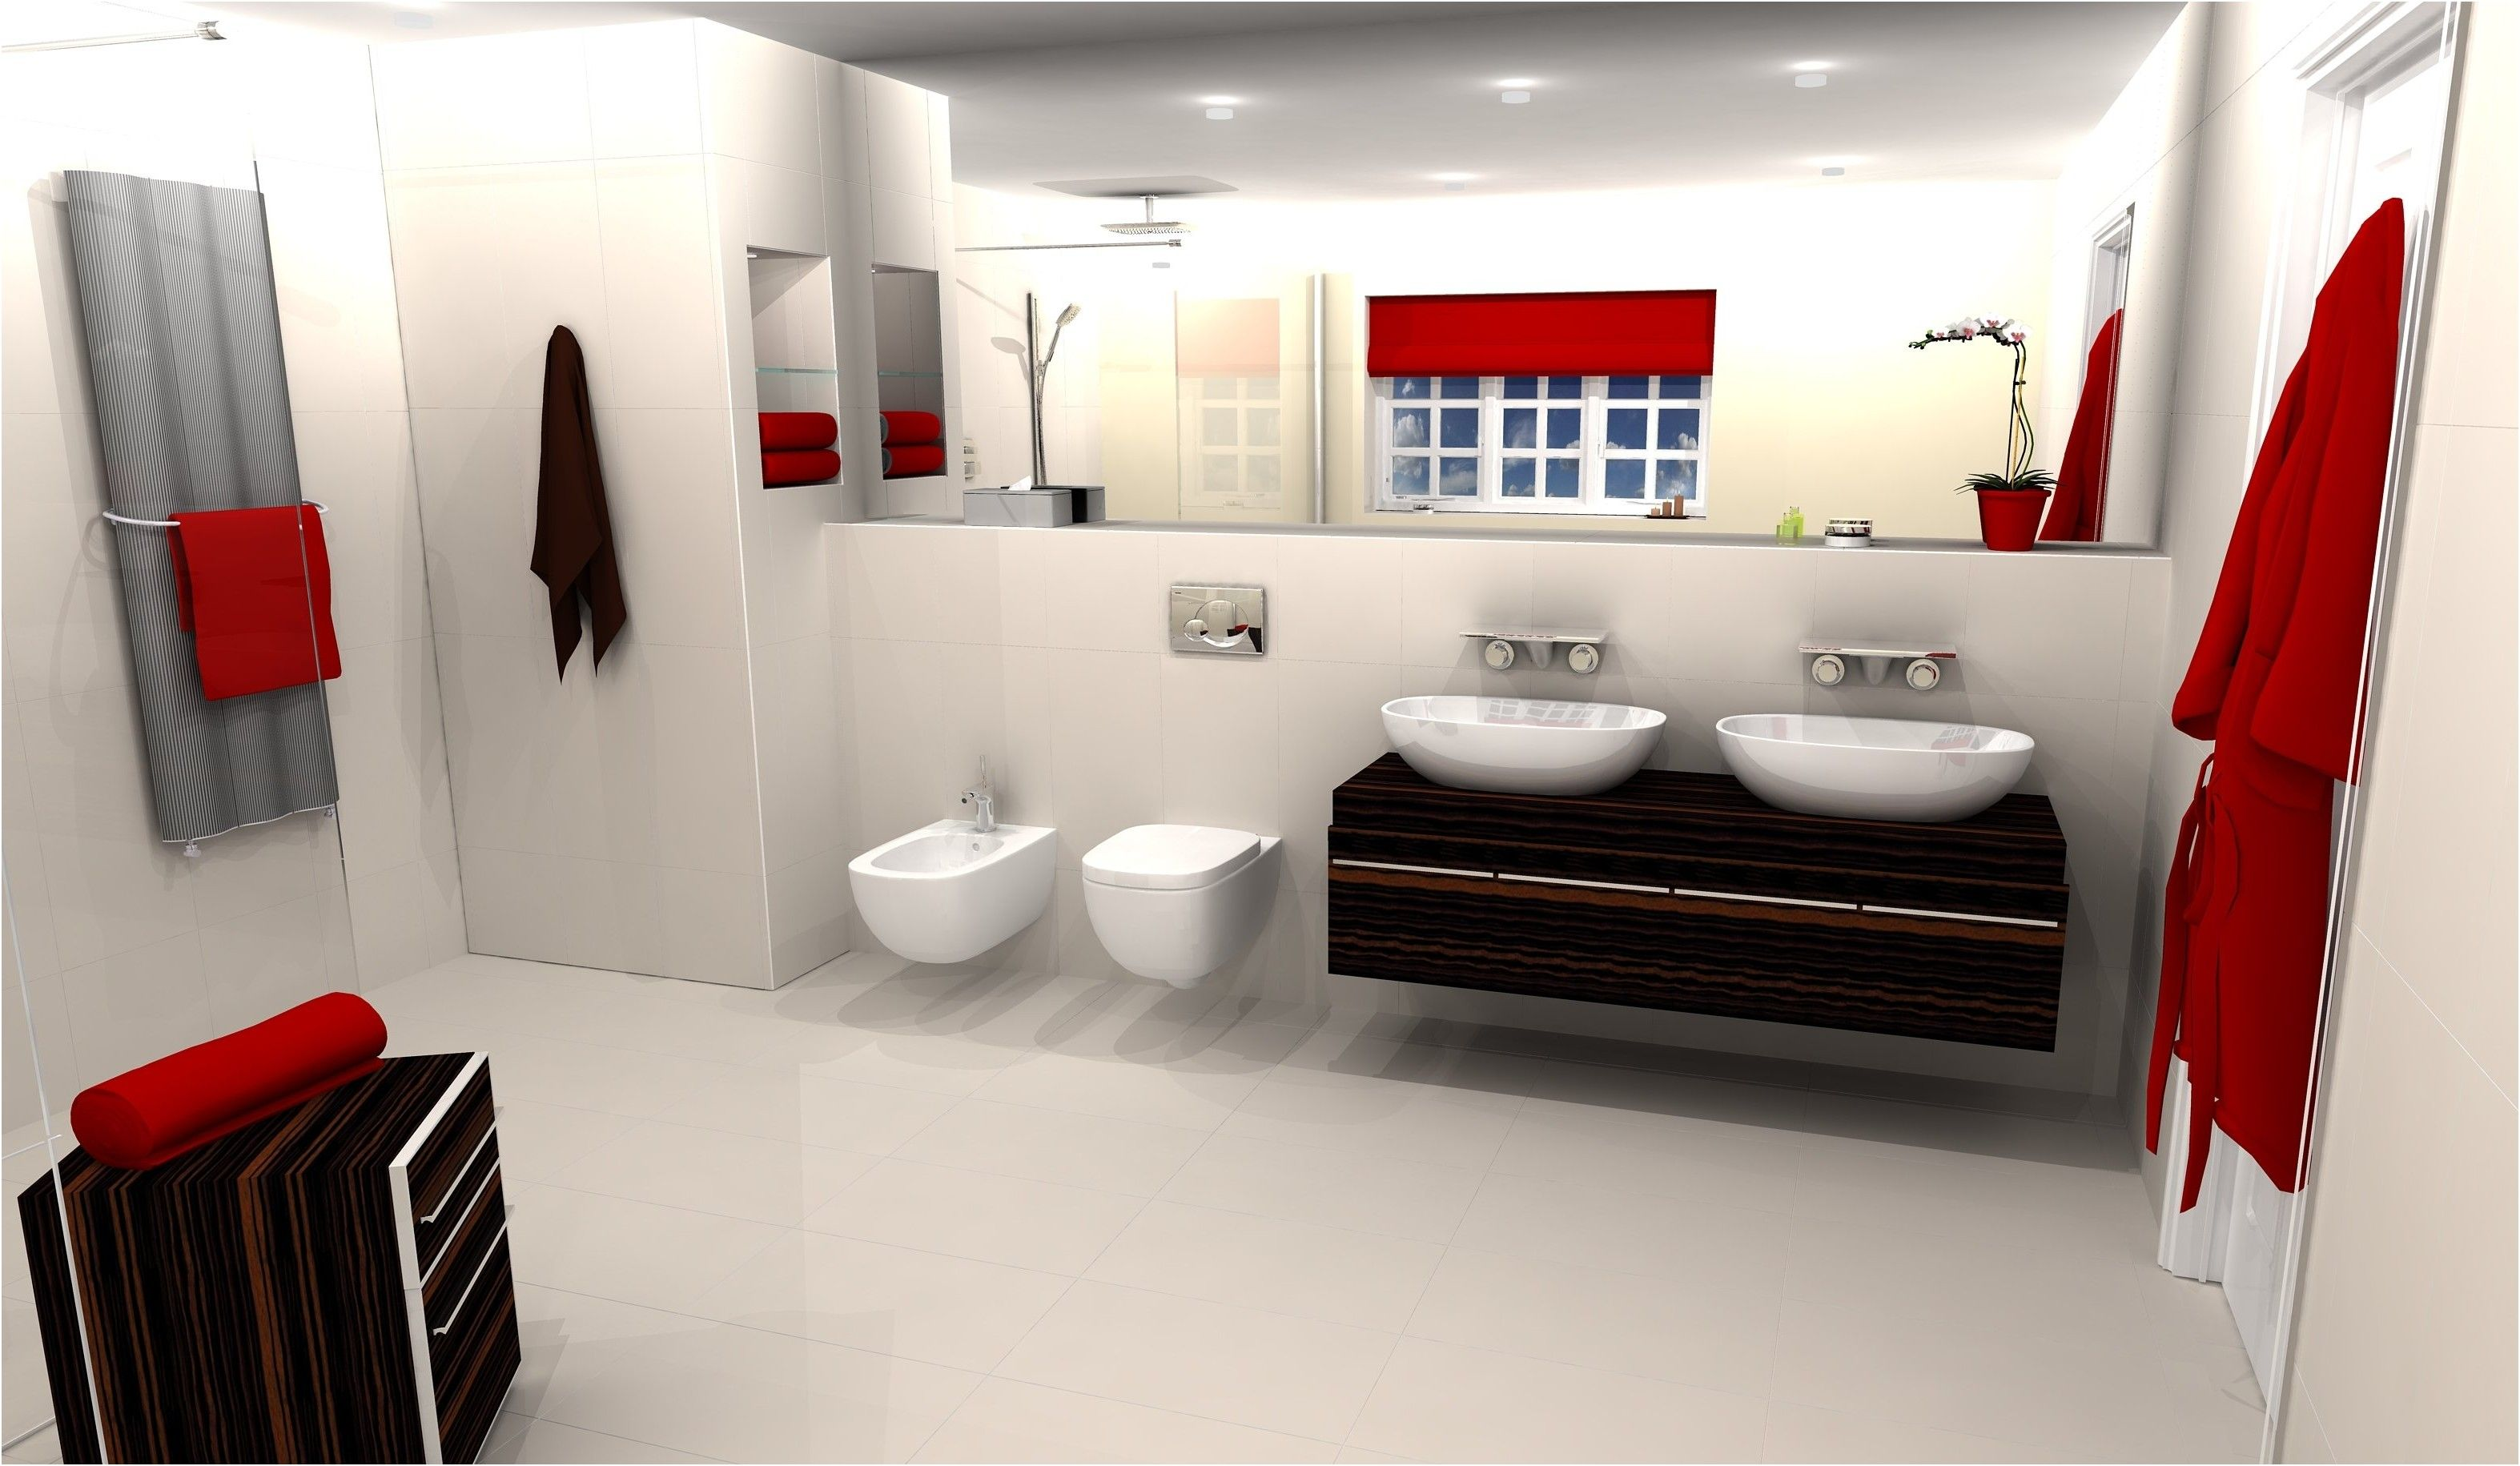 Floor Tile Layout Software Mac Free Architectural Design Software From Free Bathroom Design Softw Big Bathroom